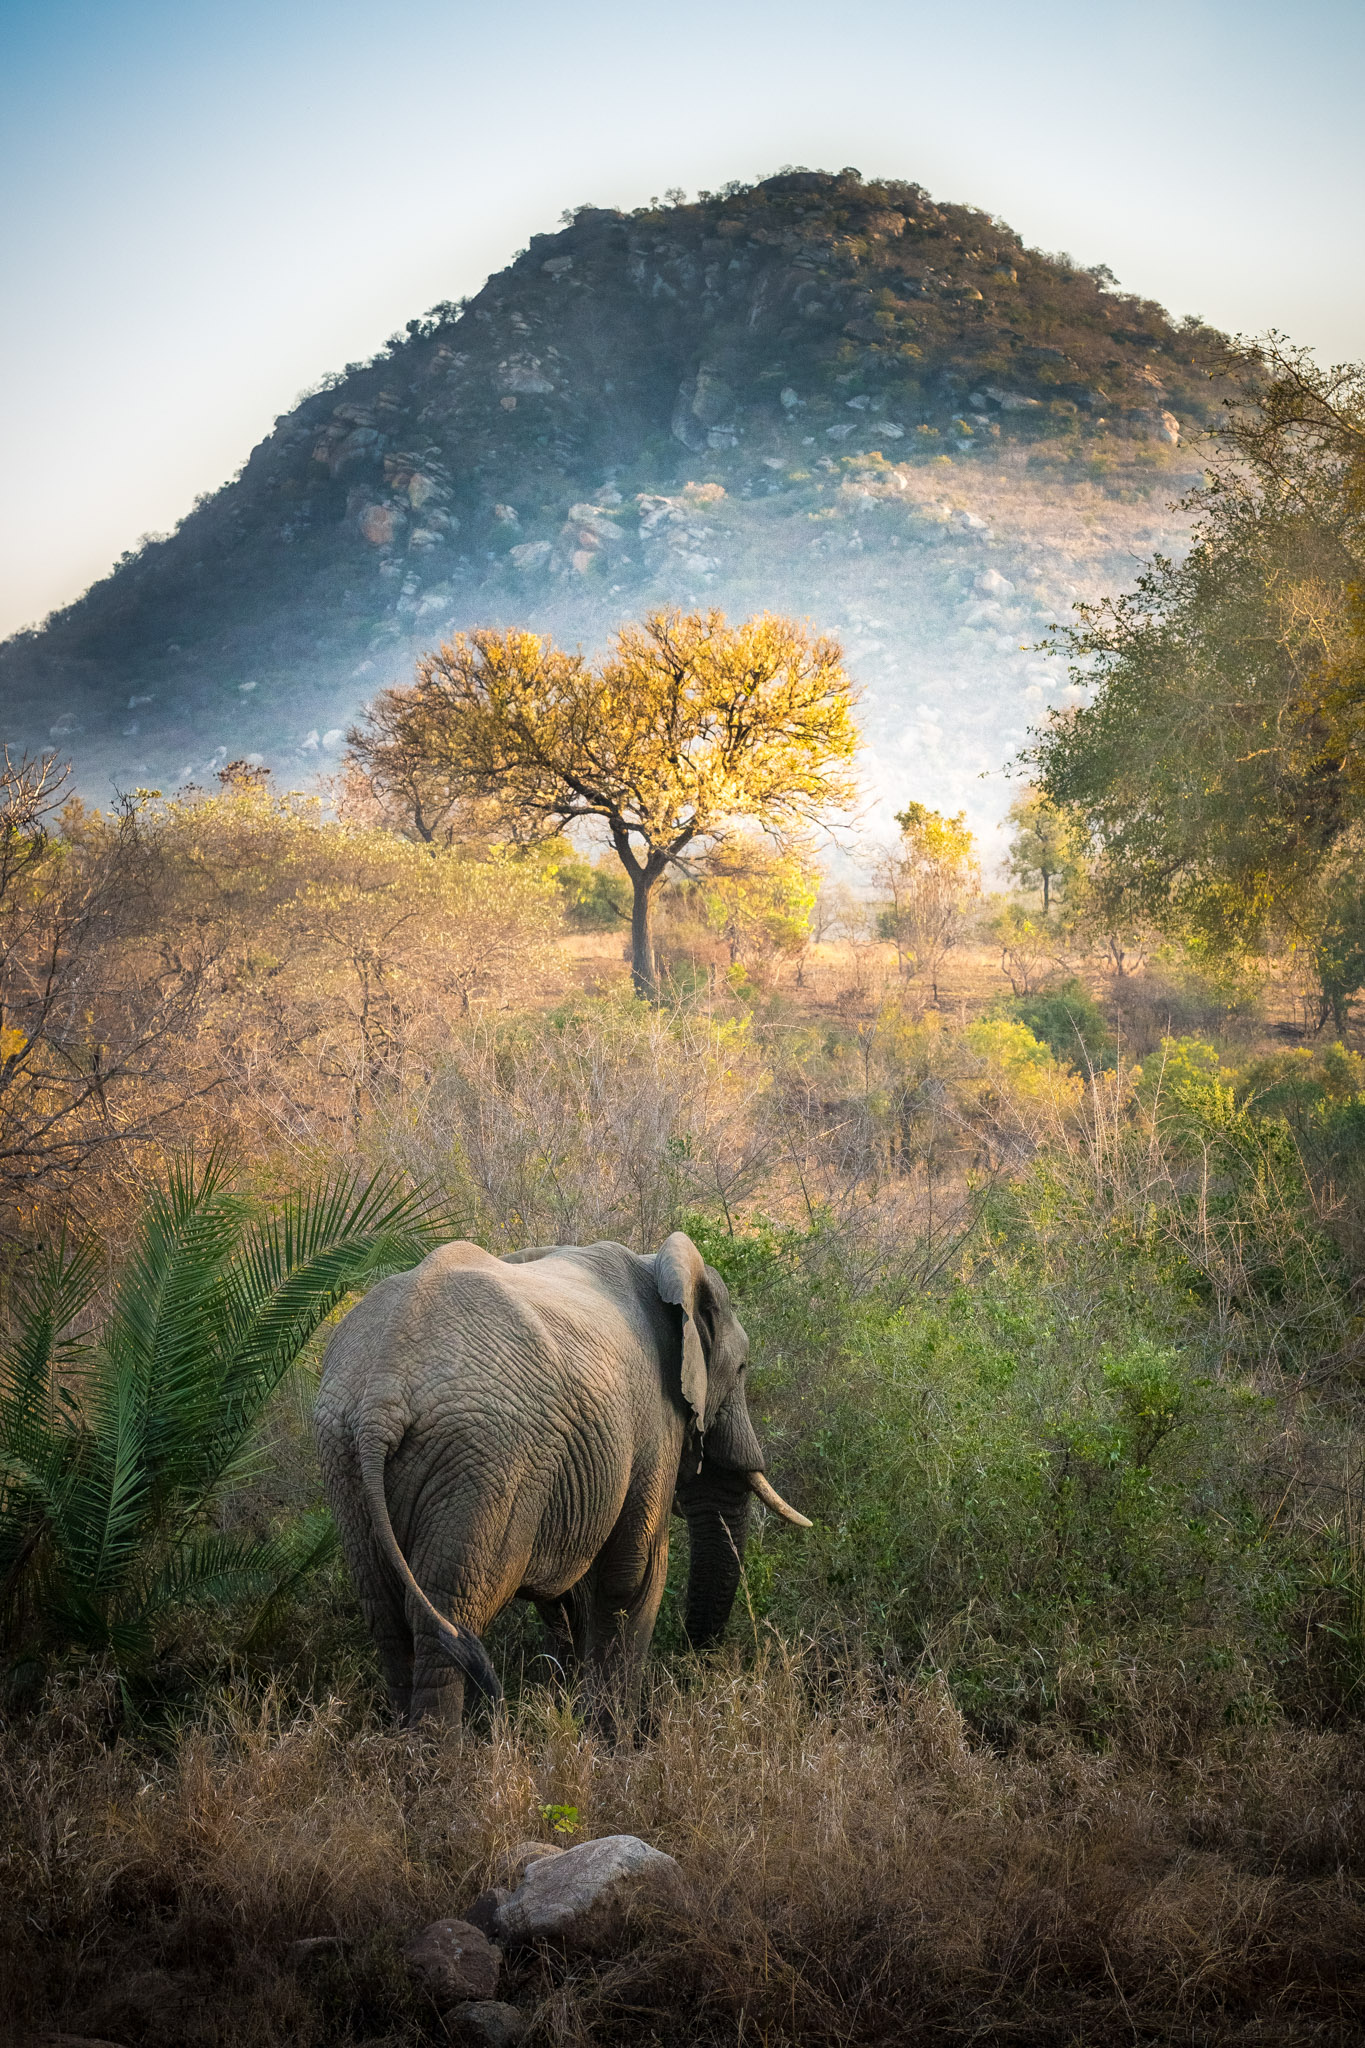 Elephant, Berg-en-Dal, Kruger National Park, South Africa